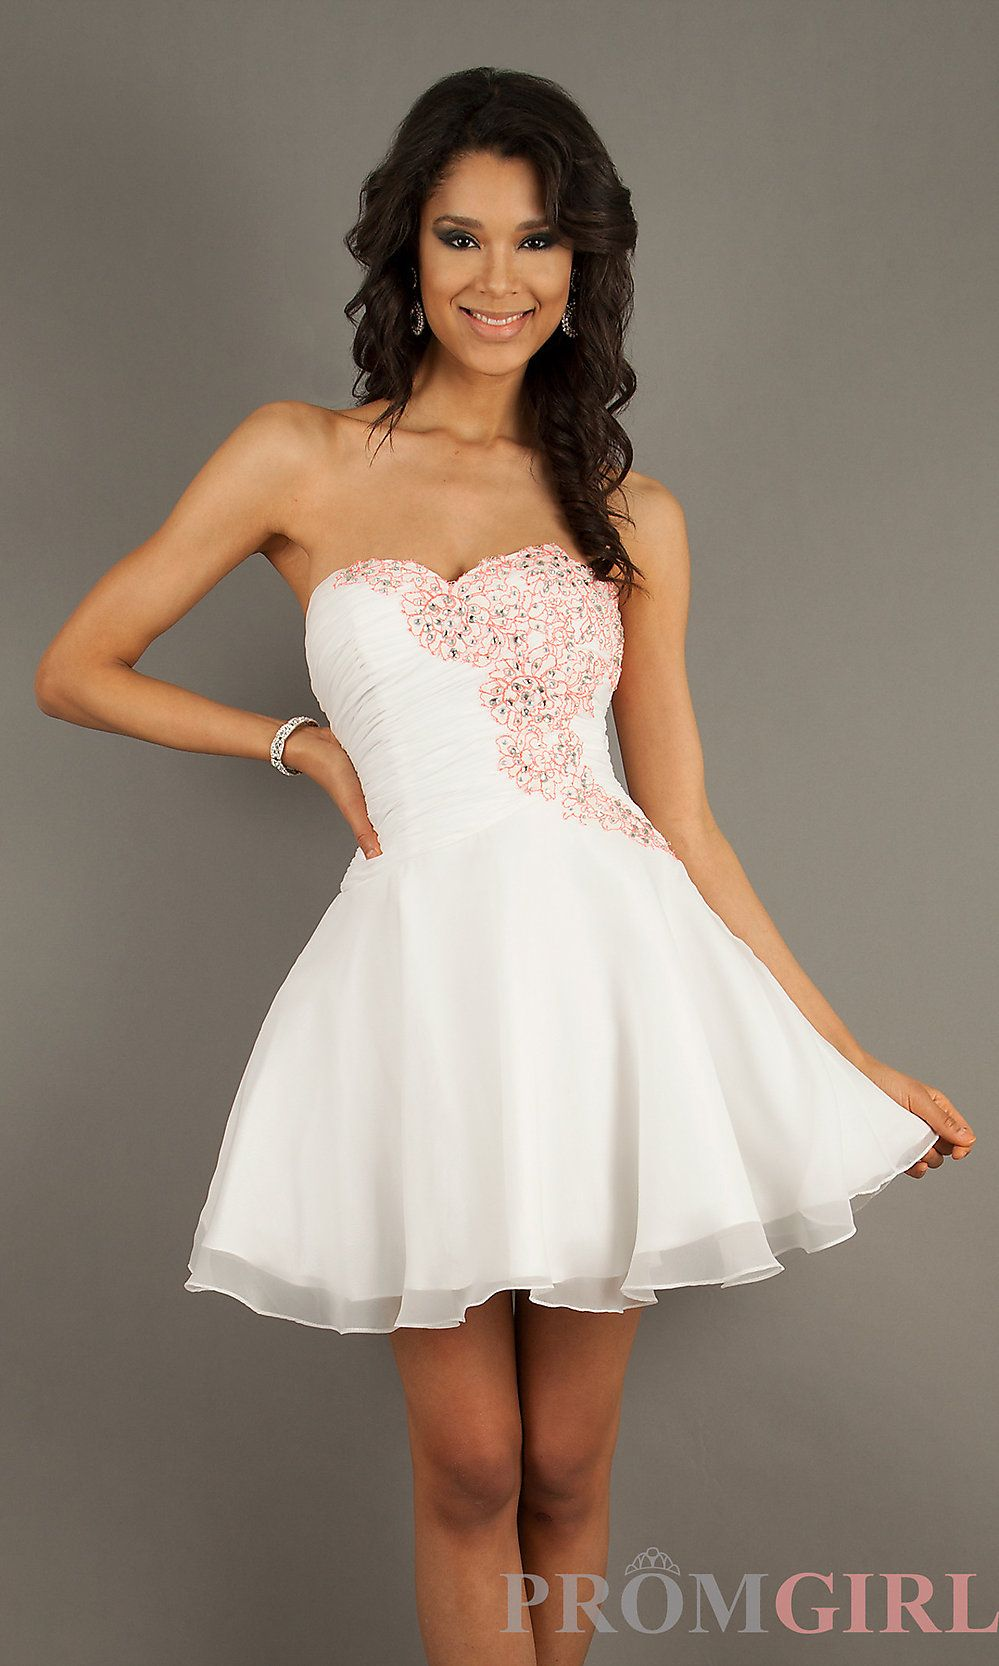 Prom Dresses, Evening Gowns at PromGirl: Short Strapless White ...